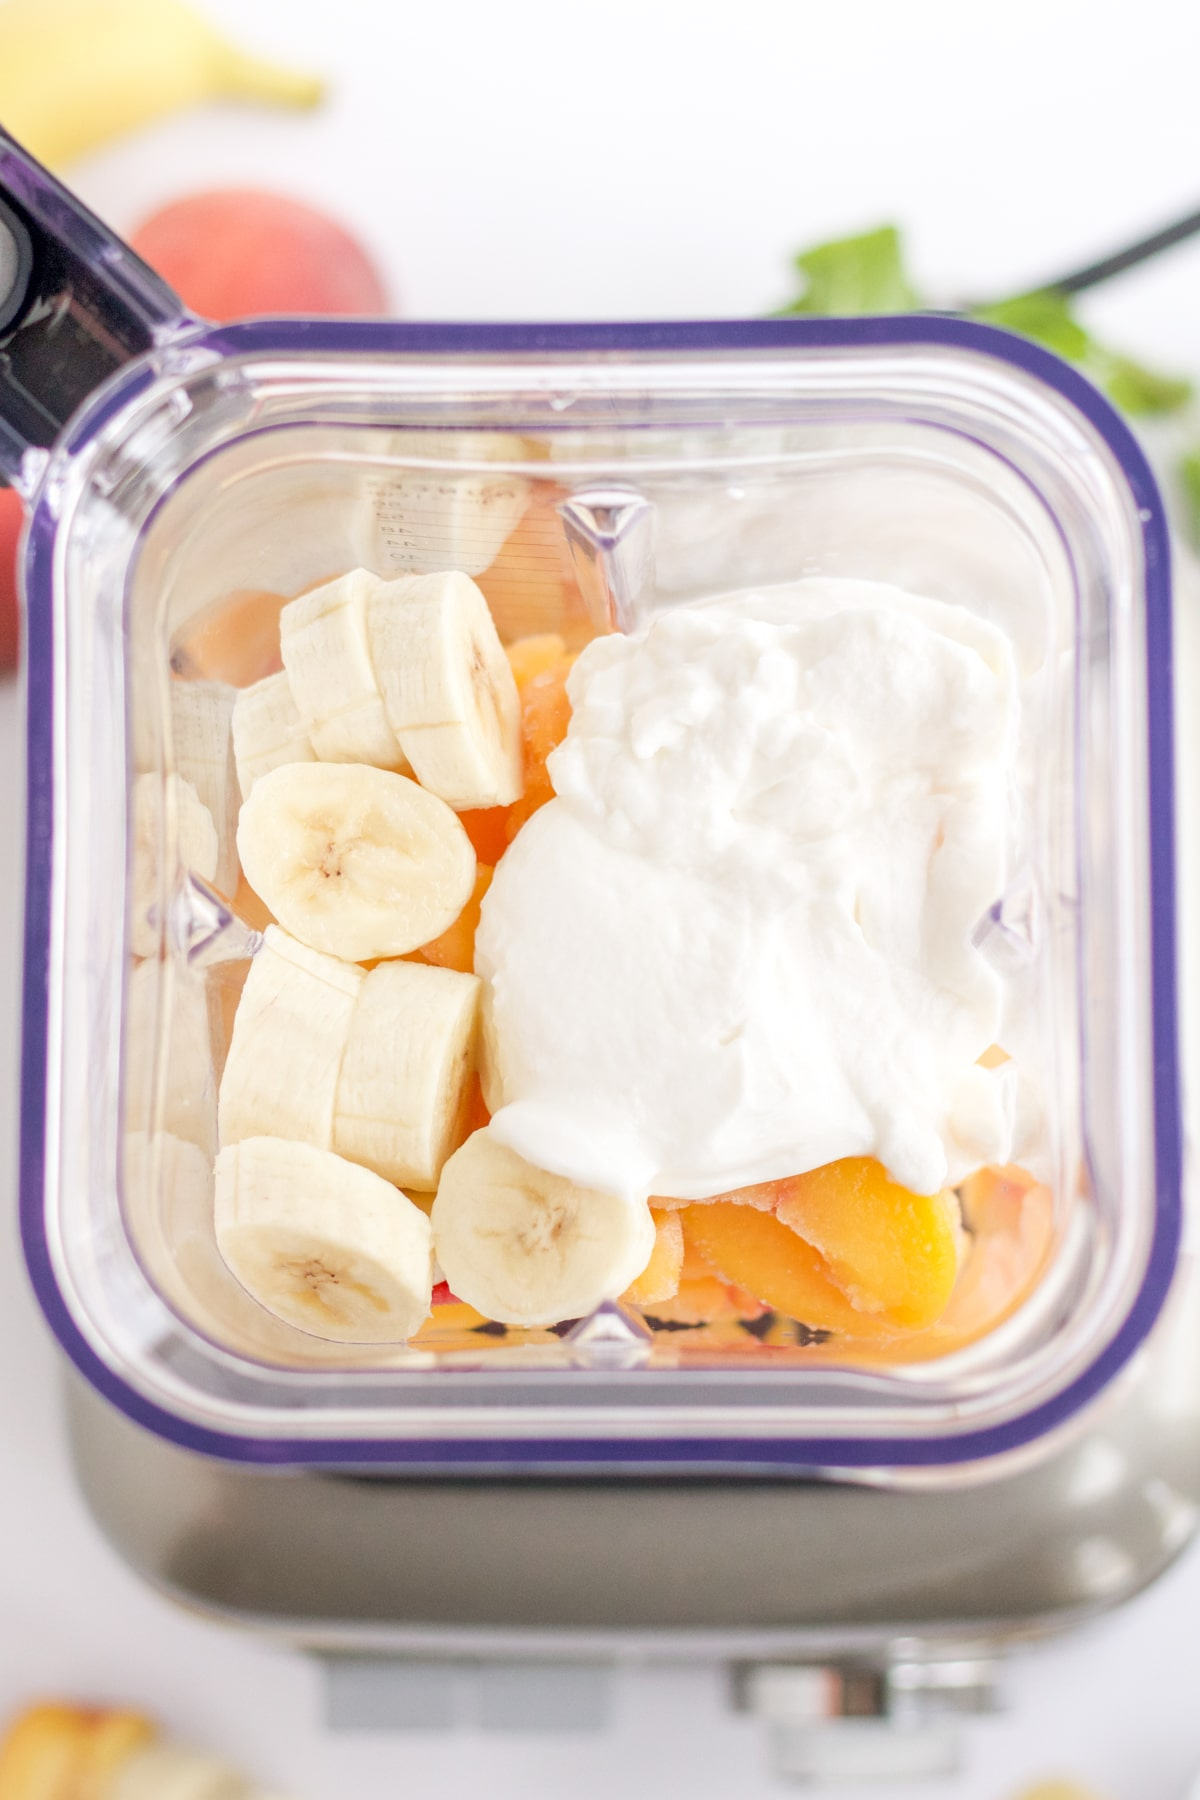 overhead shot of ingredients in a blender: bananas, yogurt and peaches